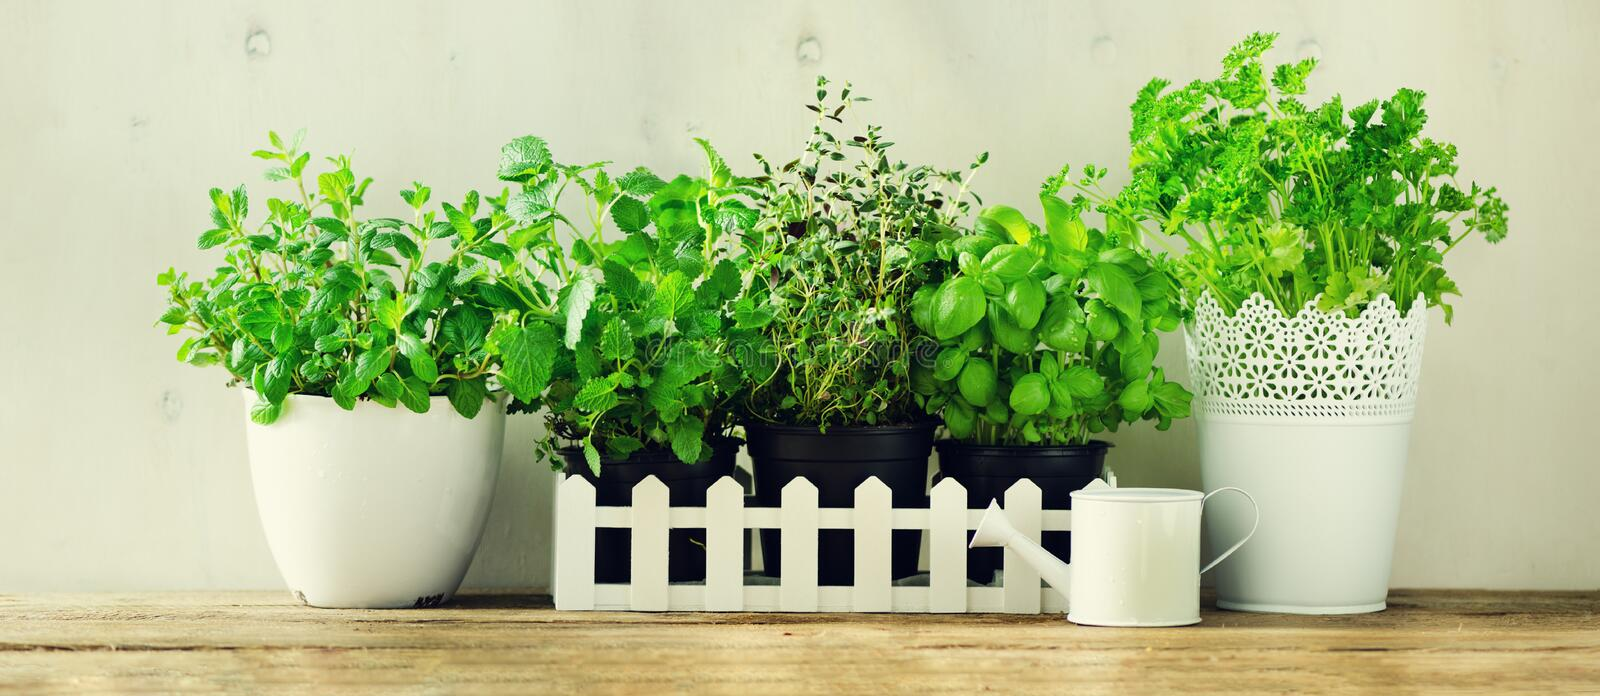 Green fresh aromatic herbs - melissa, mint, thyme, basil, parsley in pots, watering can on white and wooden background royalty free stock photos